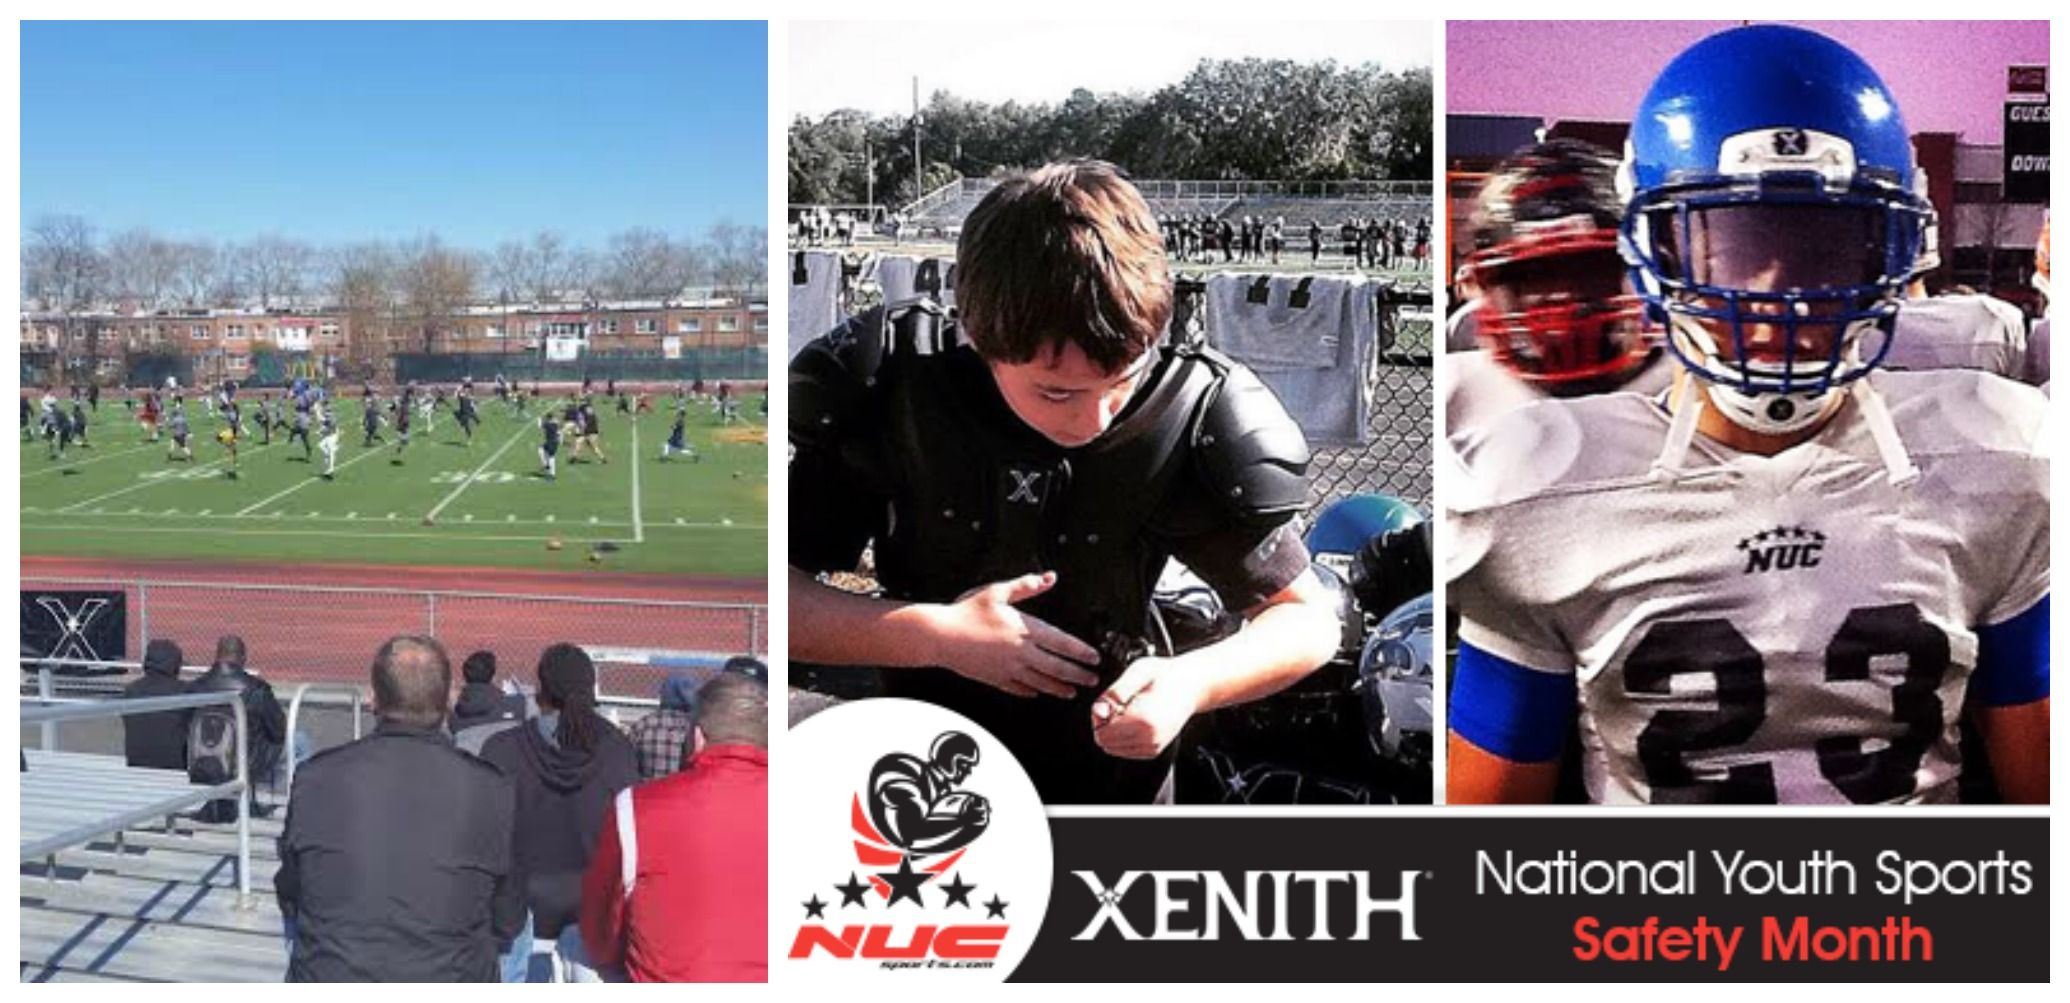 NUC and Xenith partner to support National Youth Safety